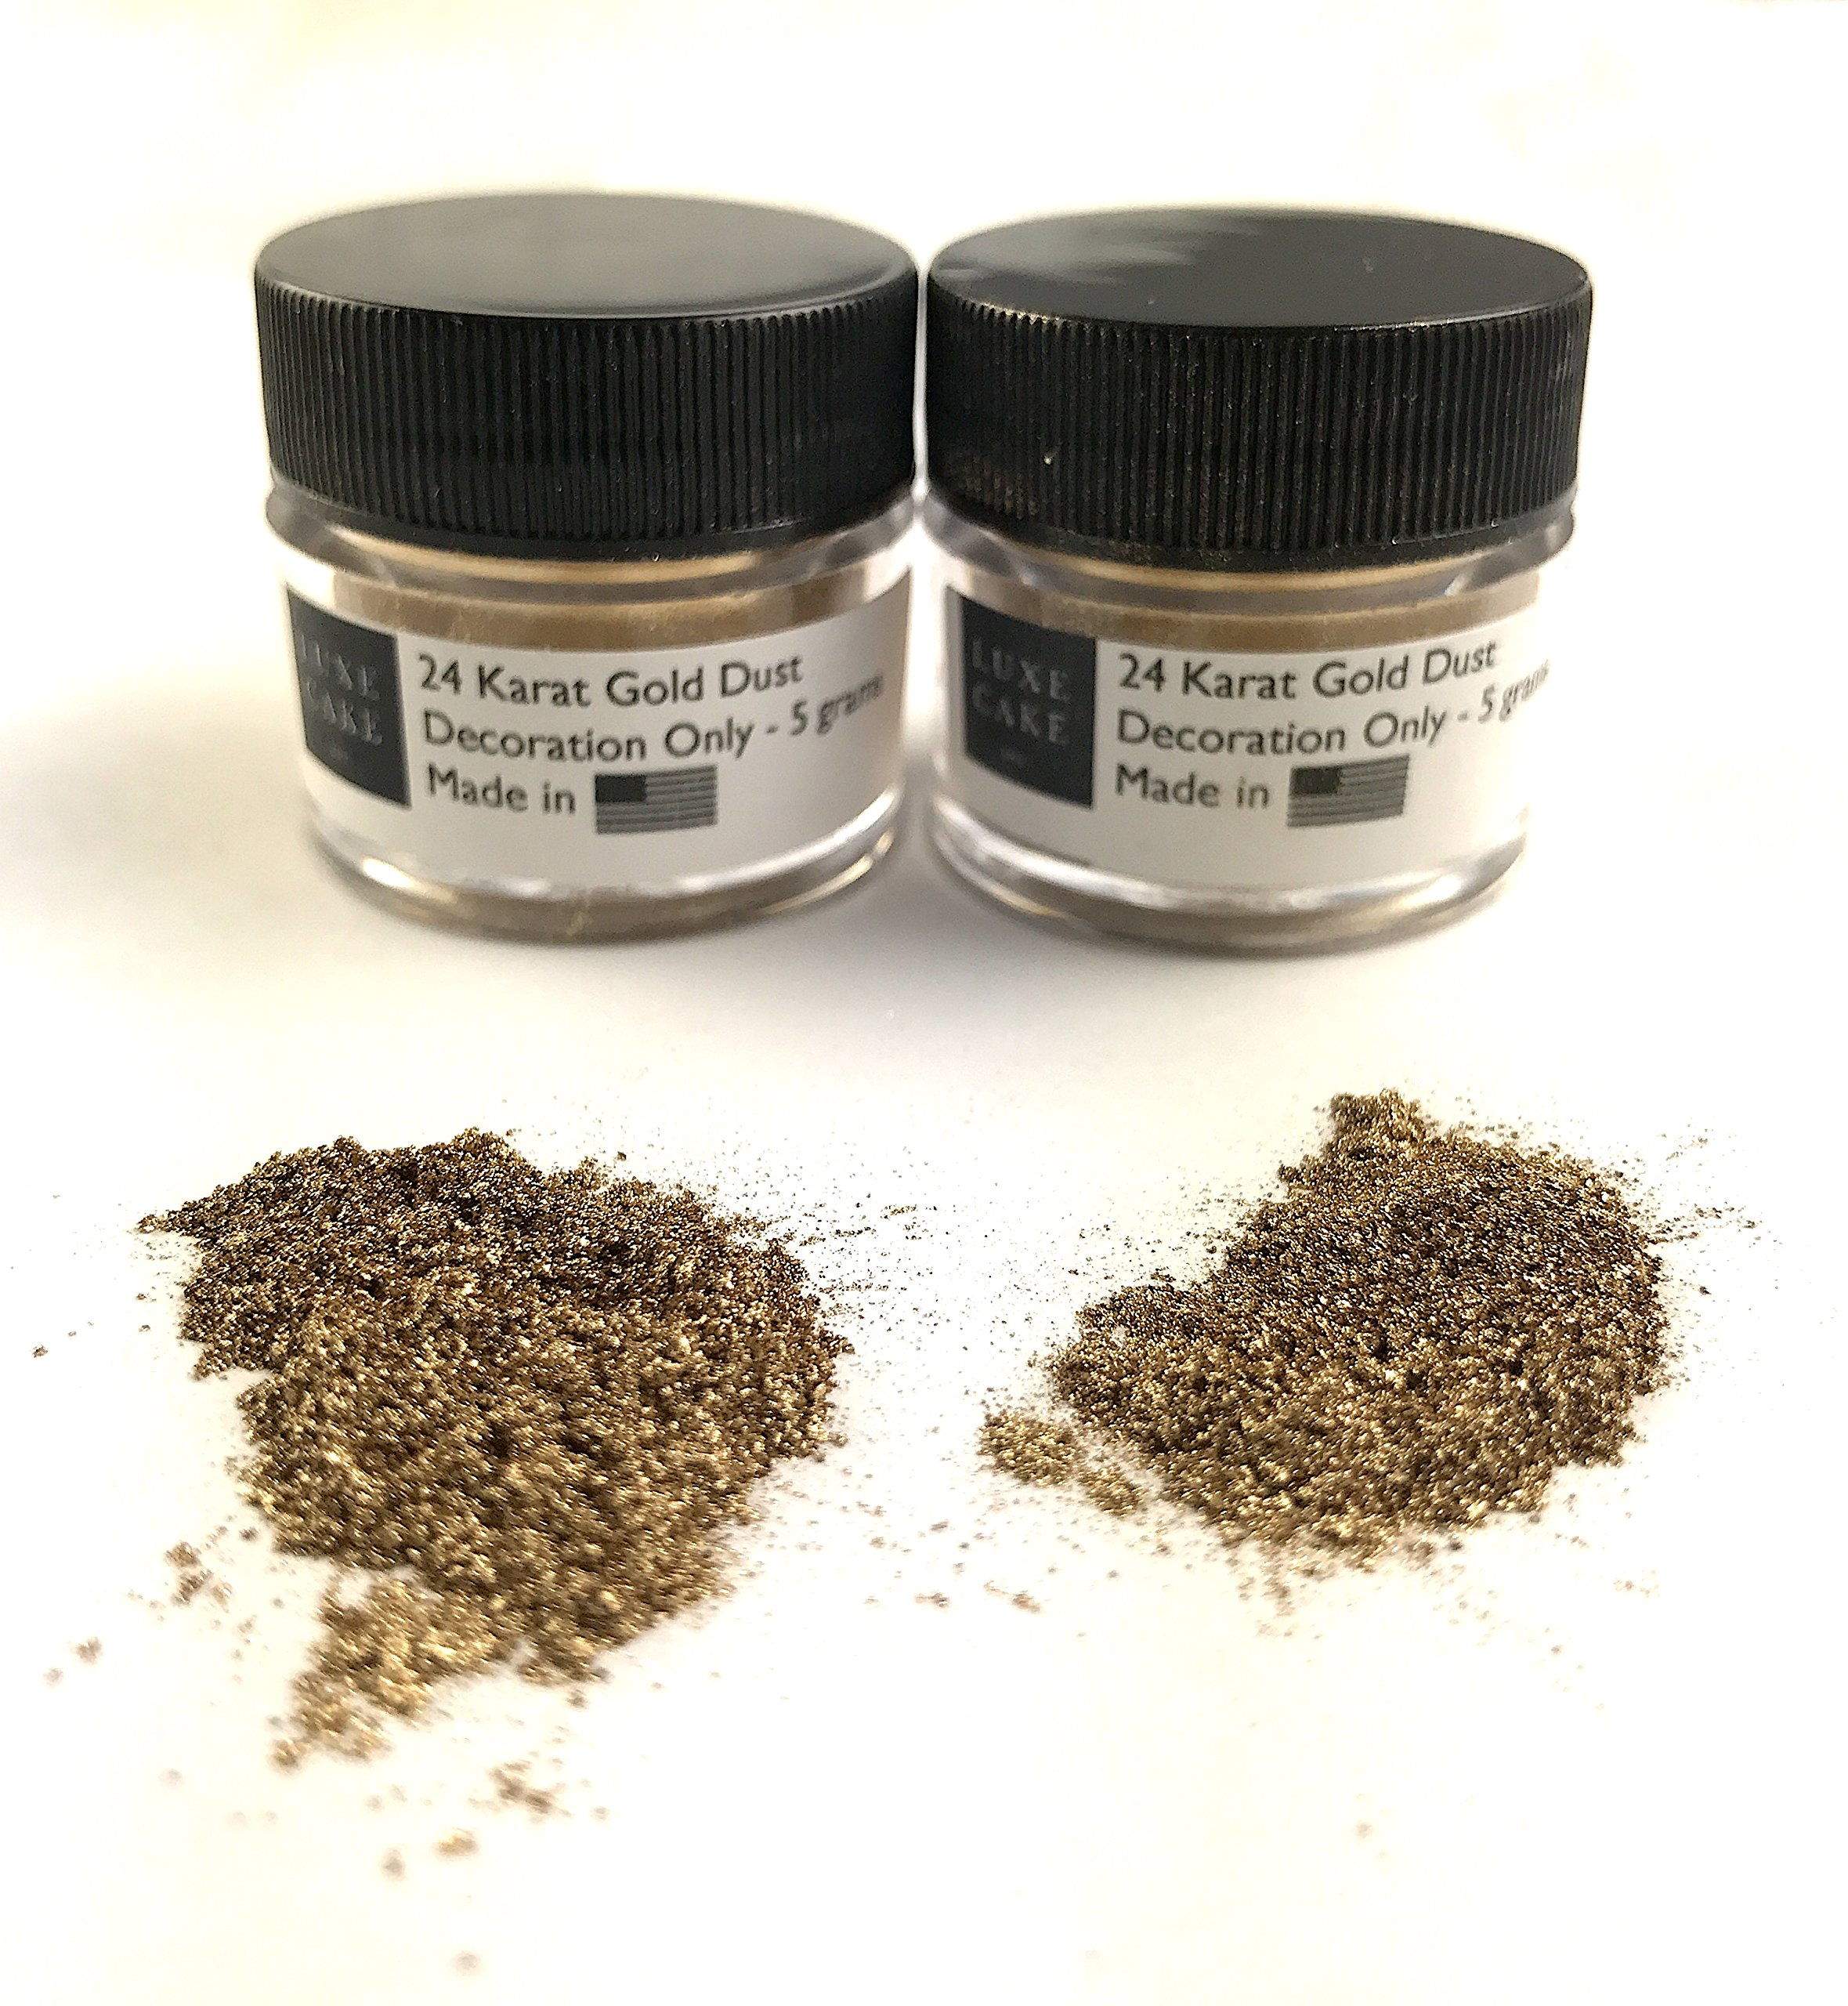 (2 Pack) 24 Karat Gold Luxury Cake Dust, 10 grams total, USA Made